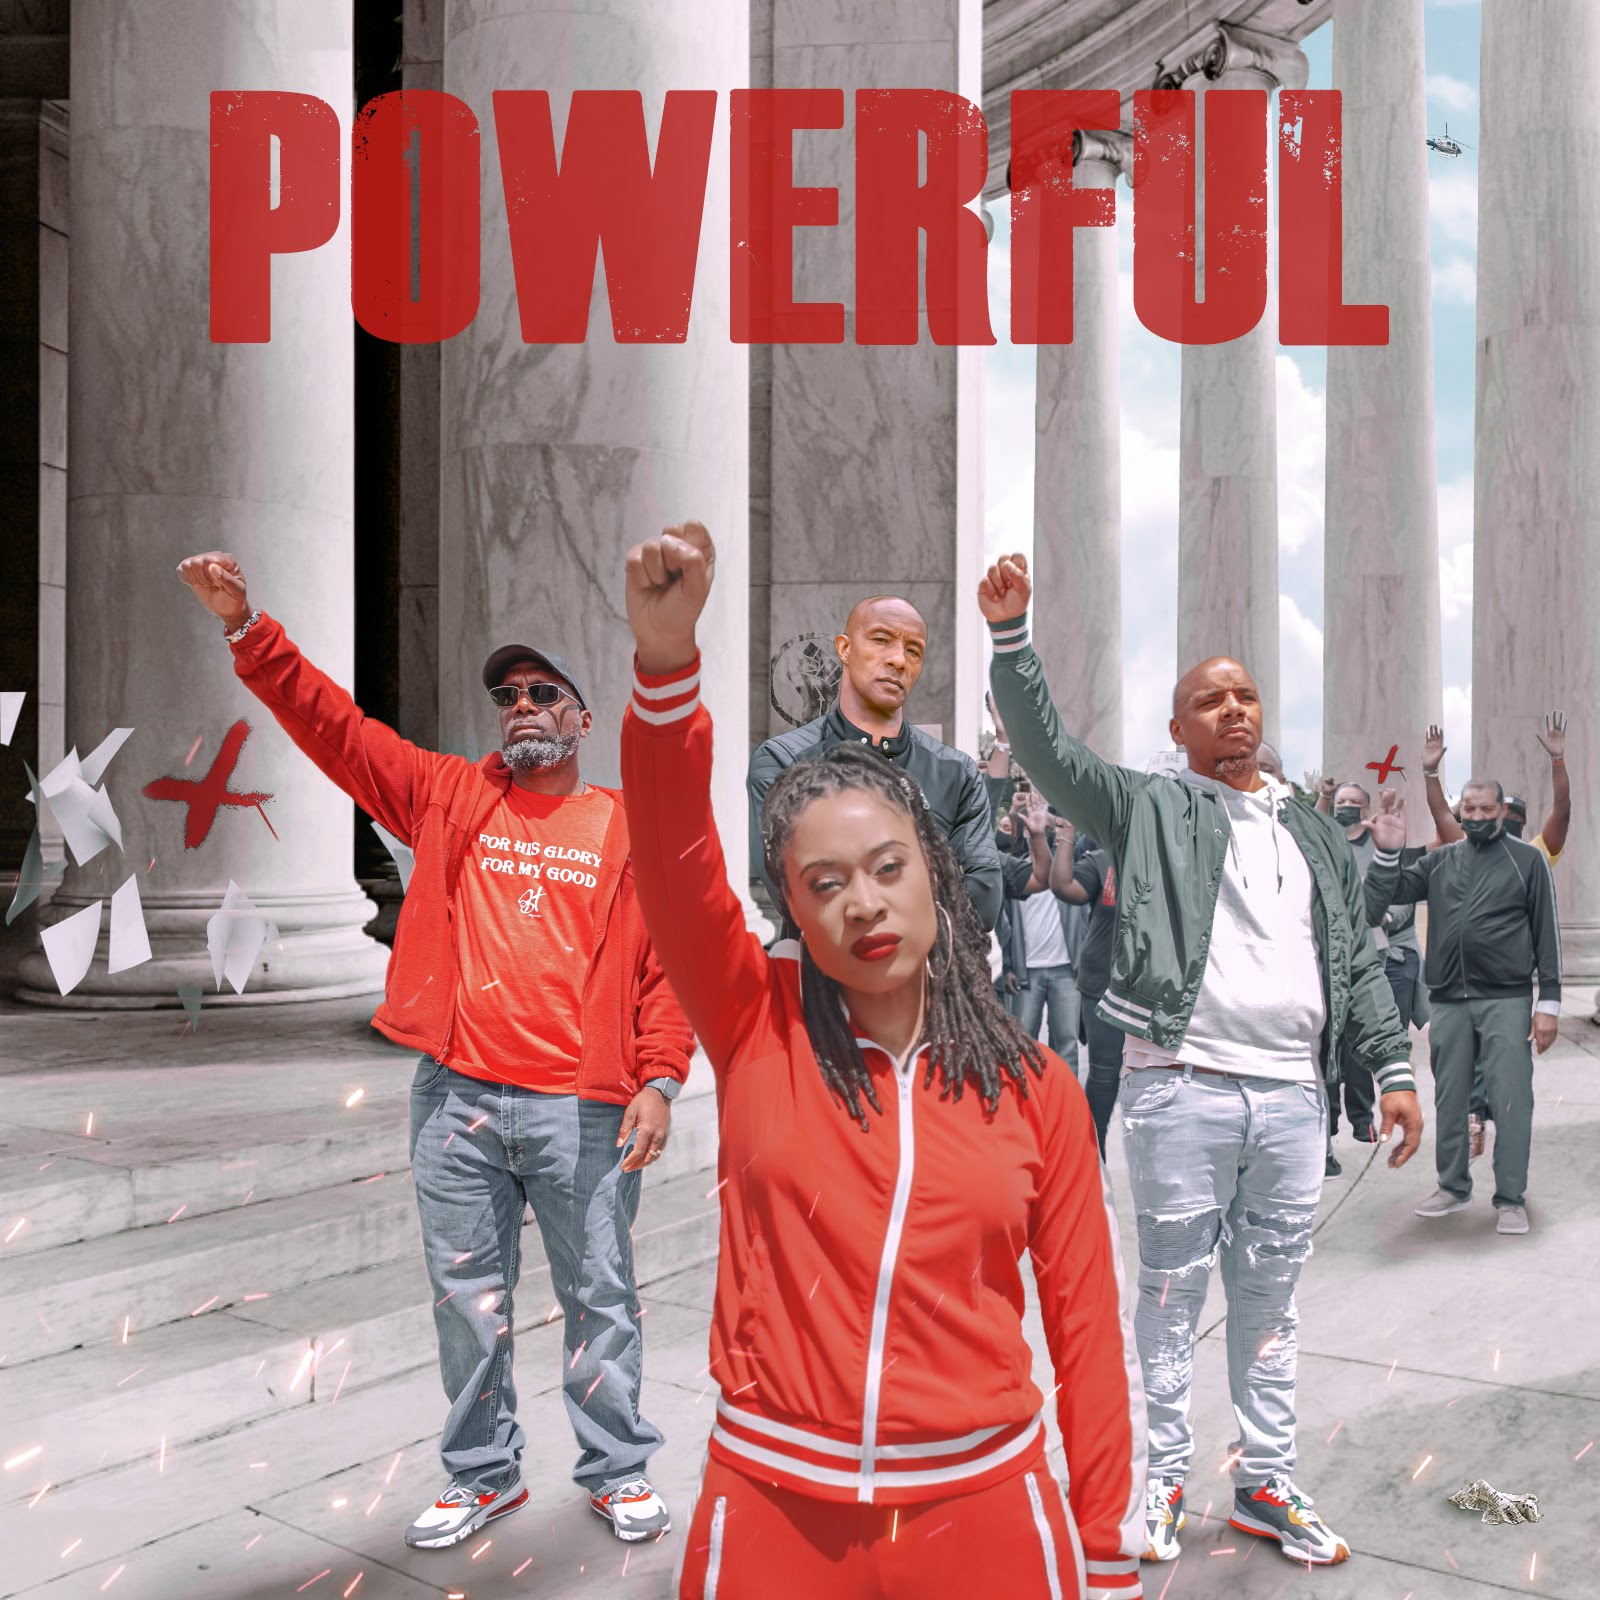 """RISING ARTISTS GRACE COVINGTON, HOLY SMOKES, AND TWYSE RELEASE """"POWERFUL"""" SINGLE ON FEDERAL HOLIDAY JUNETEENTH."""